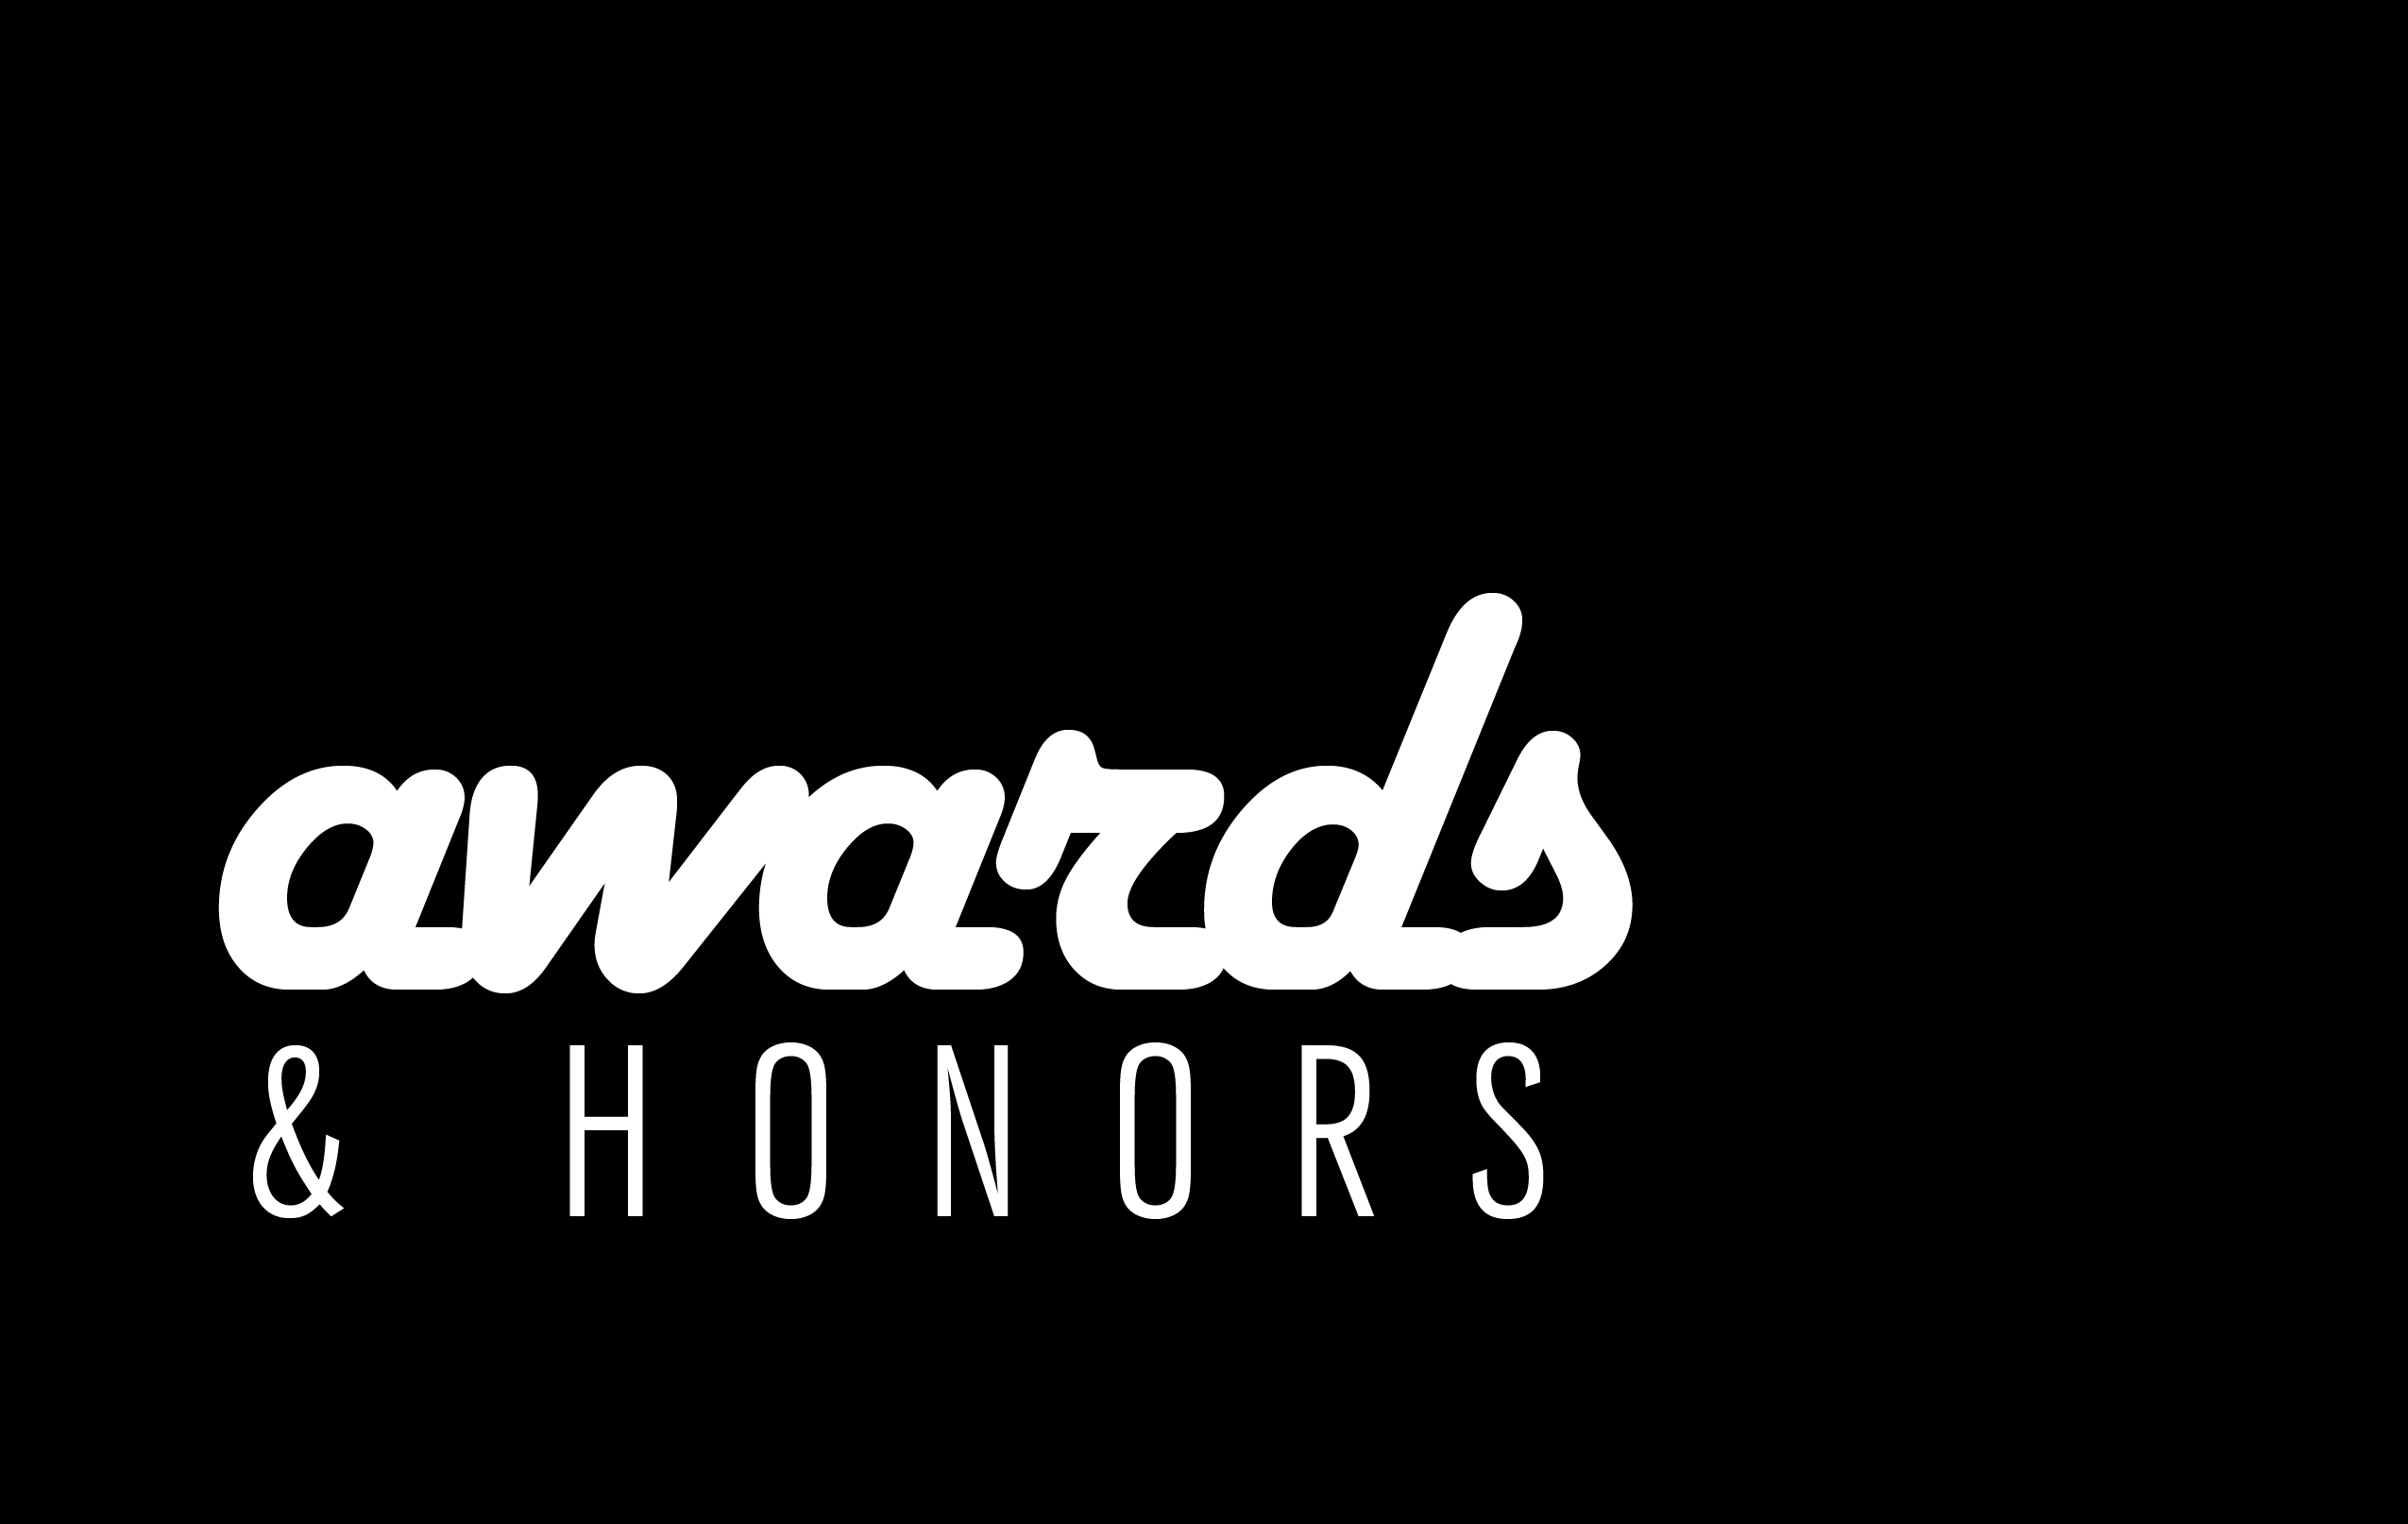 Eight in SNR earned awards or honors since Feb. 1.